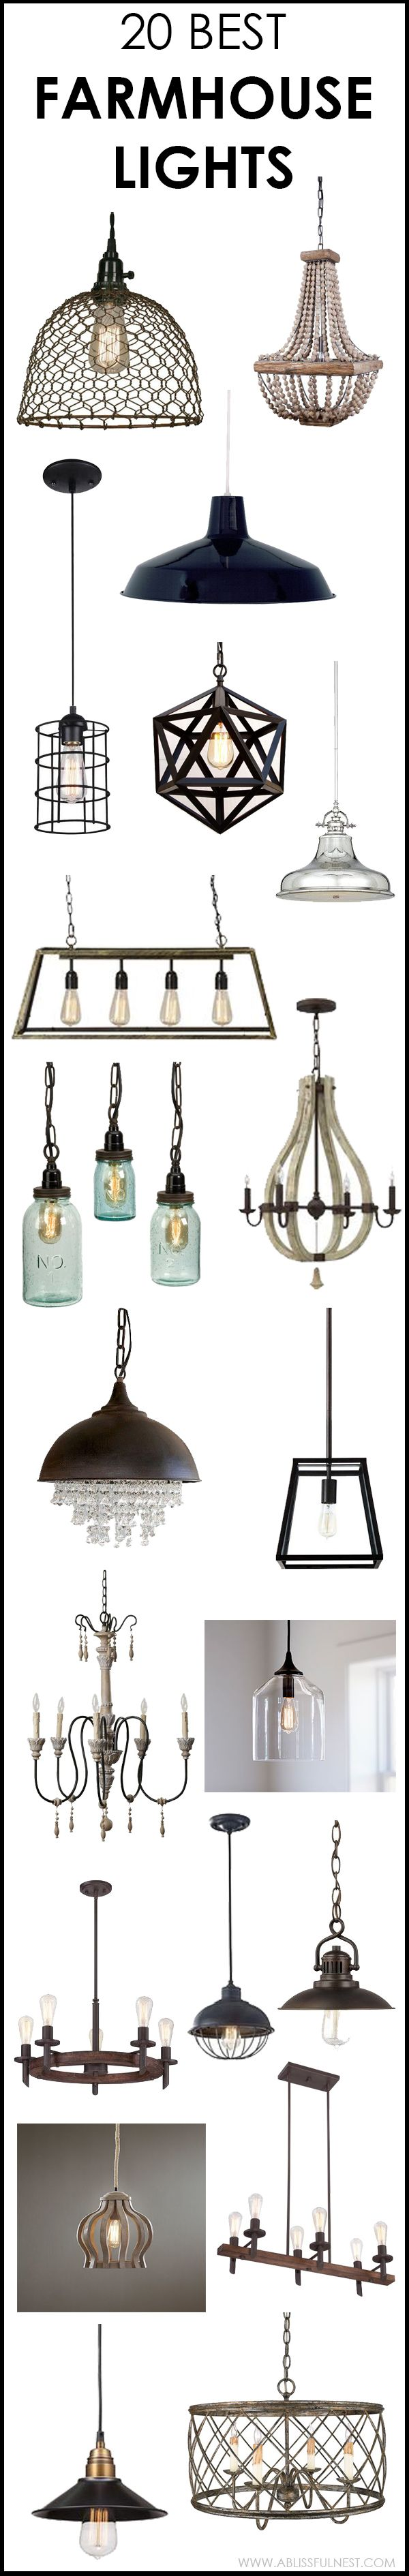 We've got 20 of the best farmhouse lights for you to choose from! If you are looking to get that Fixer Upper style then you will love these industrial lighting choices to get you that vintage farmhouse style. See more on ablissfulnest.com #farmhouse #farm